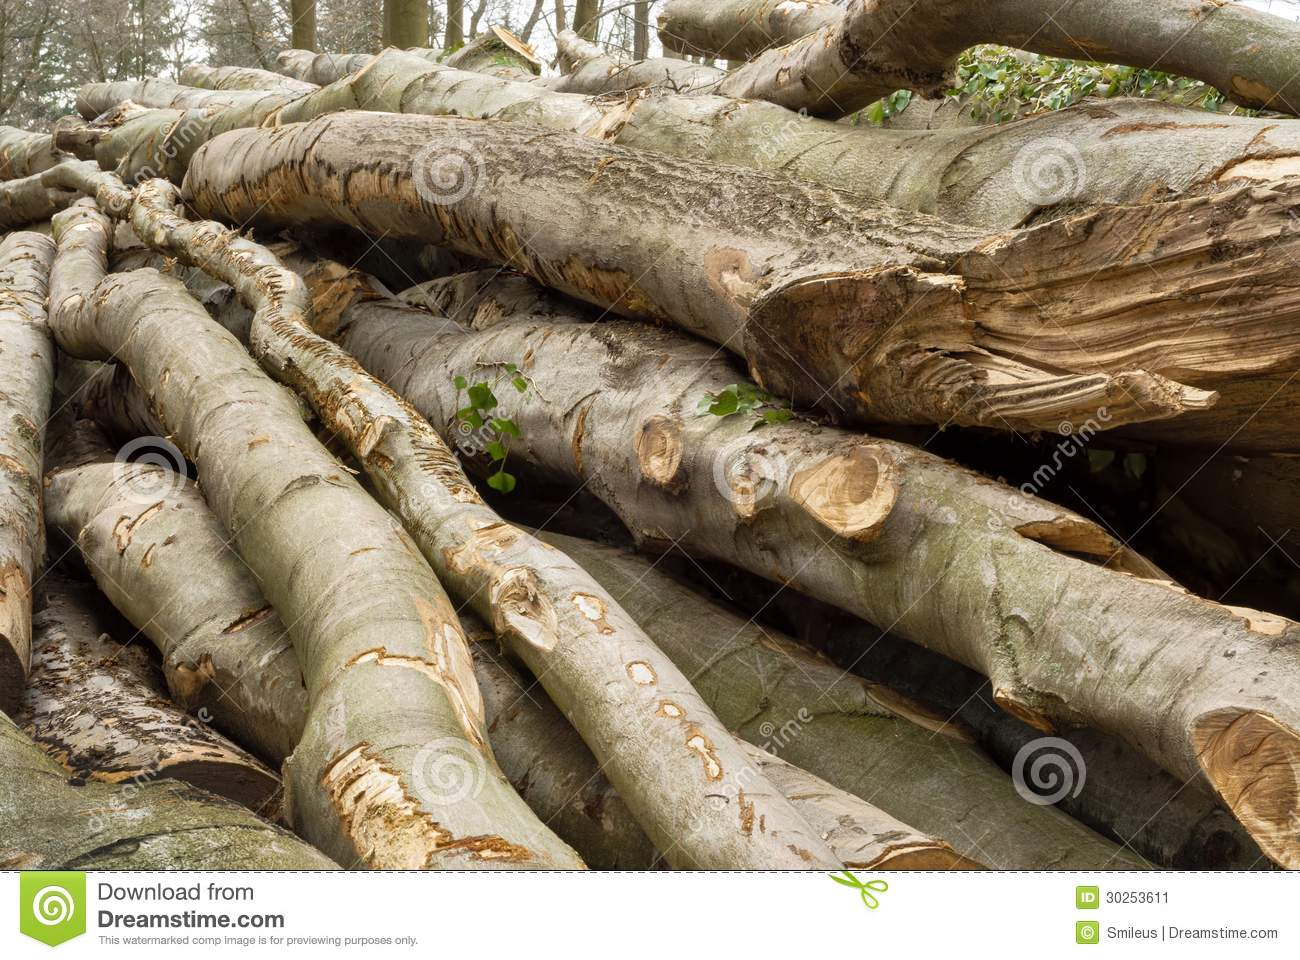 Pile Of Lumber In A Forest Shot In Soft Daylight